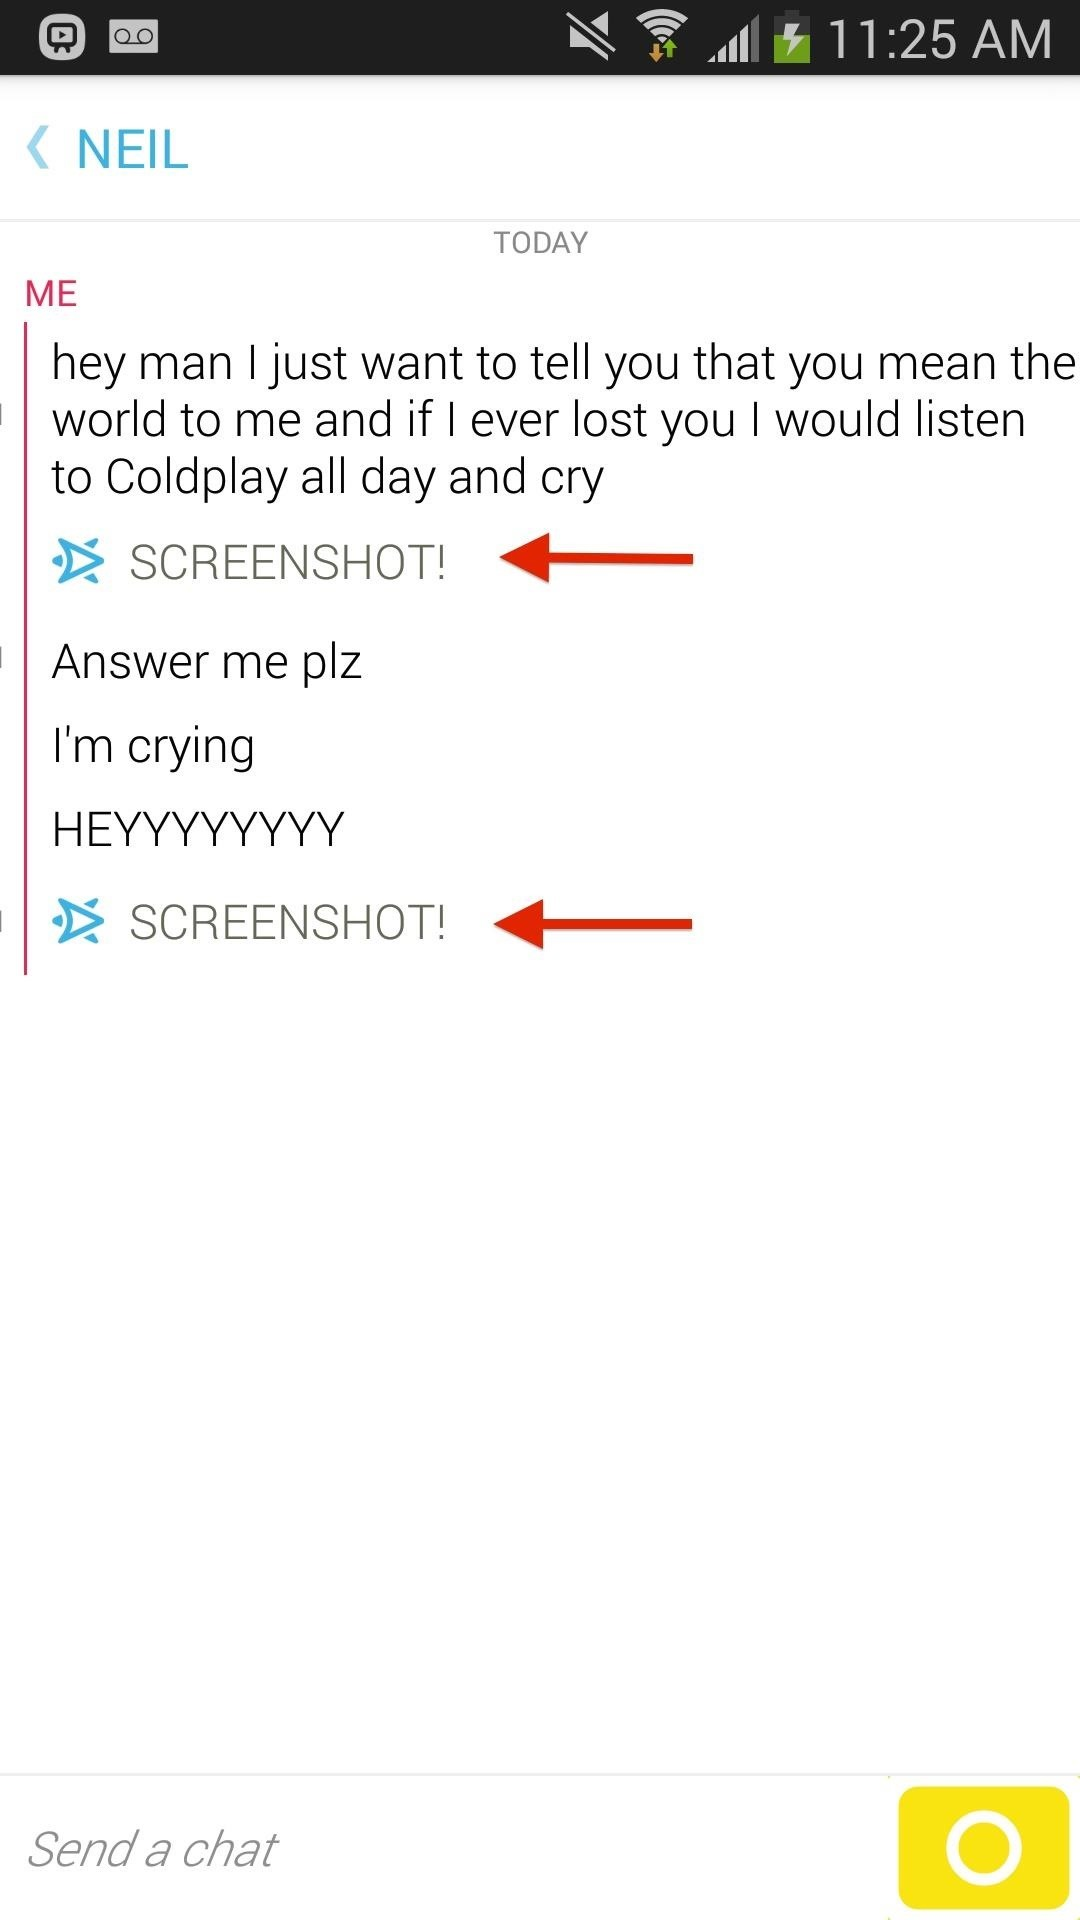 As Is Standard With Snapchat, Taking A Screenshot Of The Conversation Will  Show A Notice In The Thread